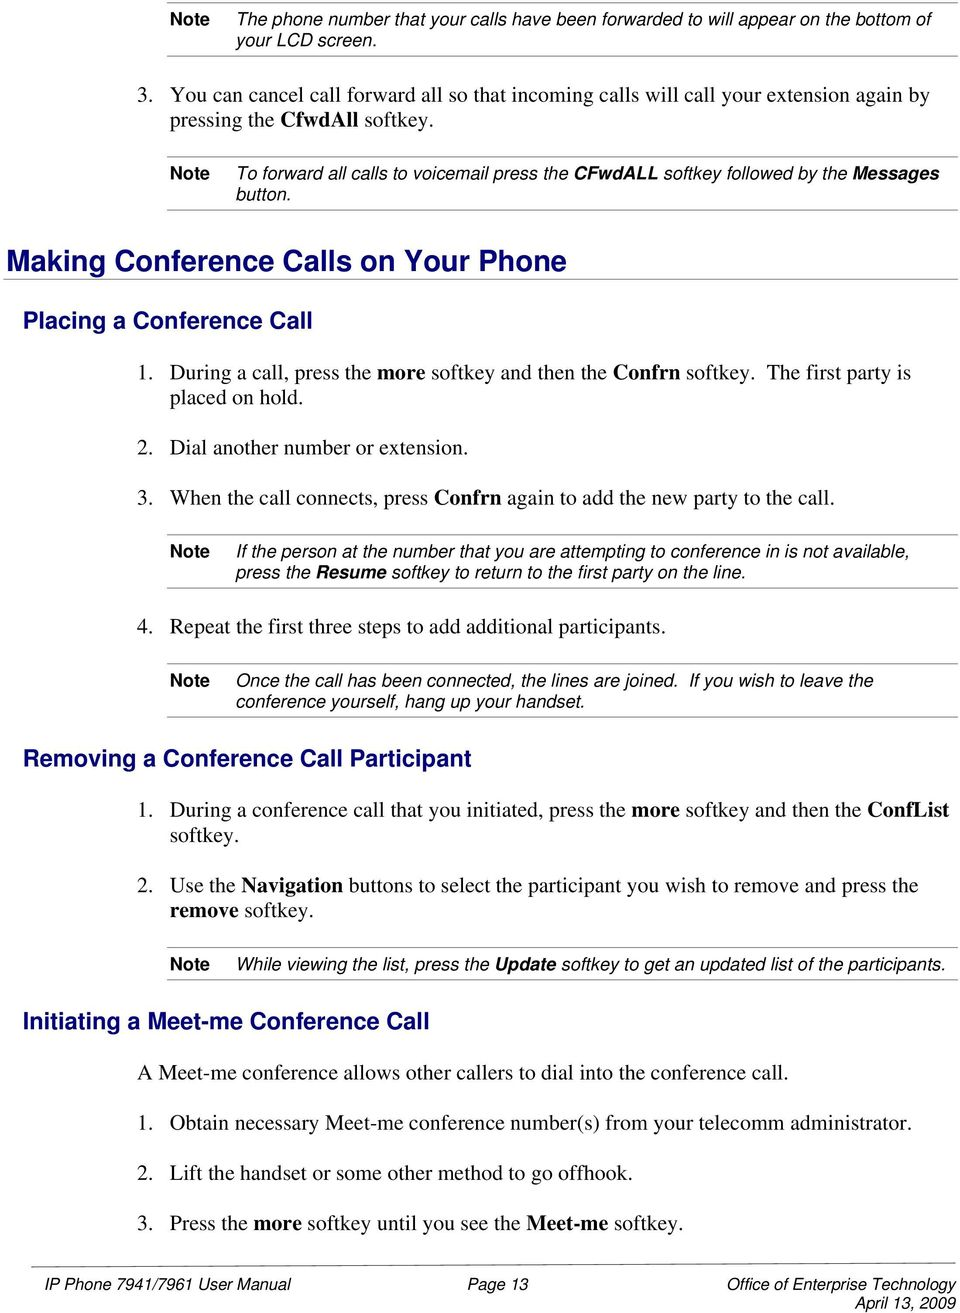 To forward all calls to voicemail press the CFwdALL softkey followed by the Messages button. Making Conference Calls on Your Phone Placing a Conference Call 1.